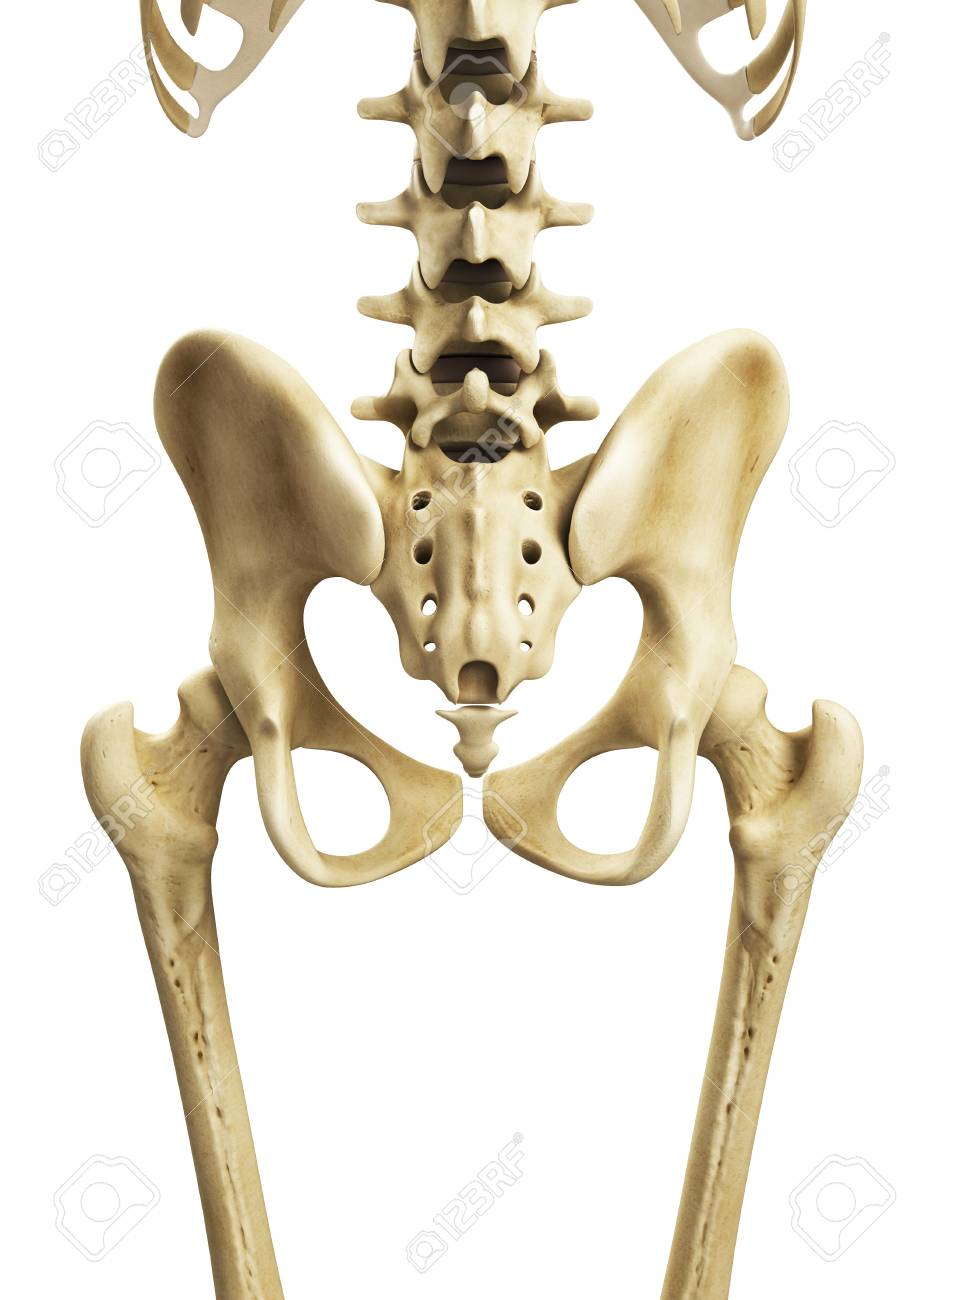 Hip Bonesartwork Stock Photo Picture And Royalty Free Image Image